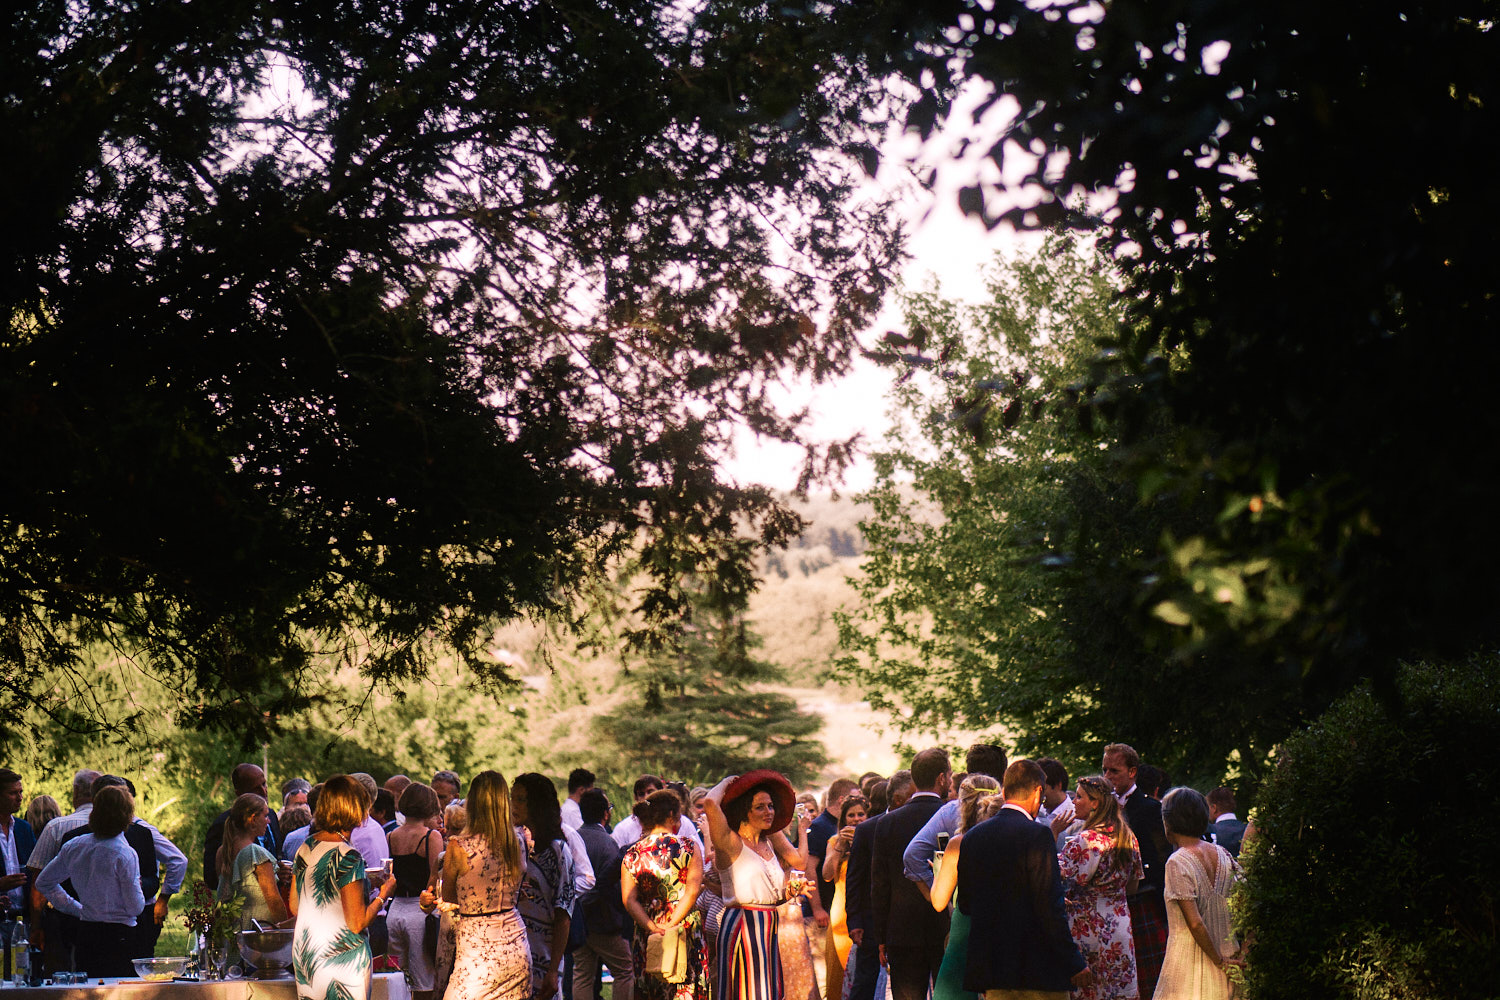 Guests mingle outside in garden during wedding ceremony